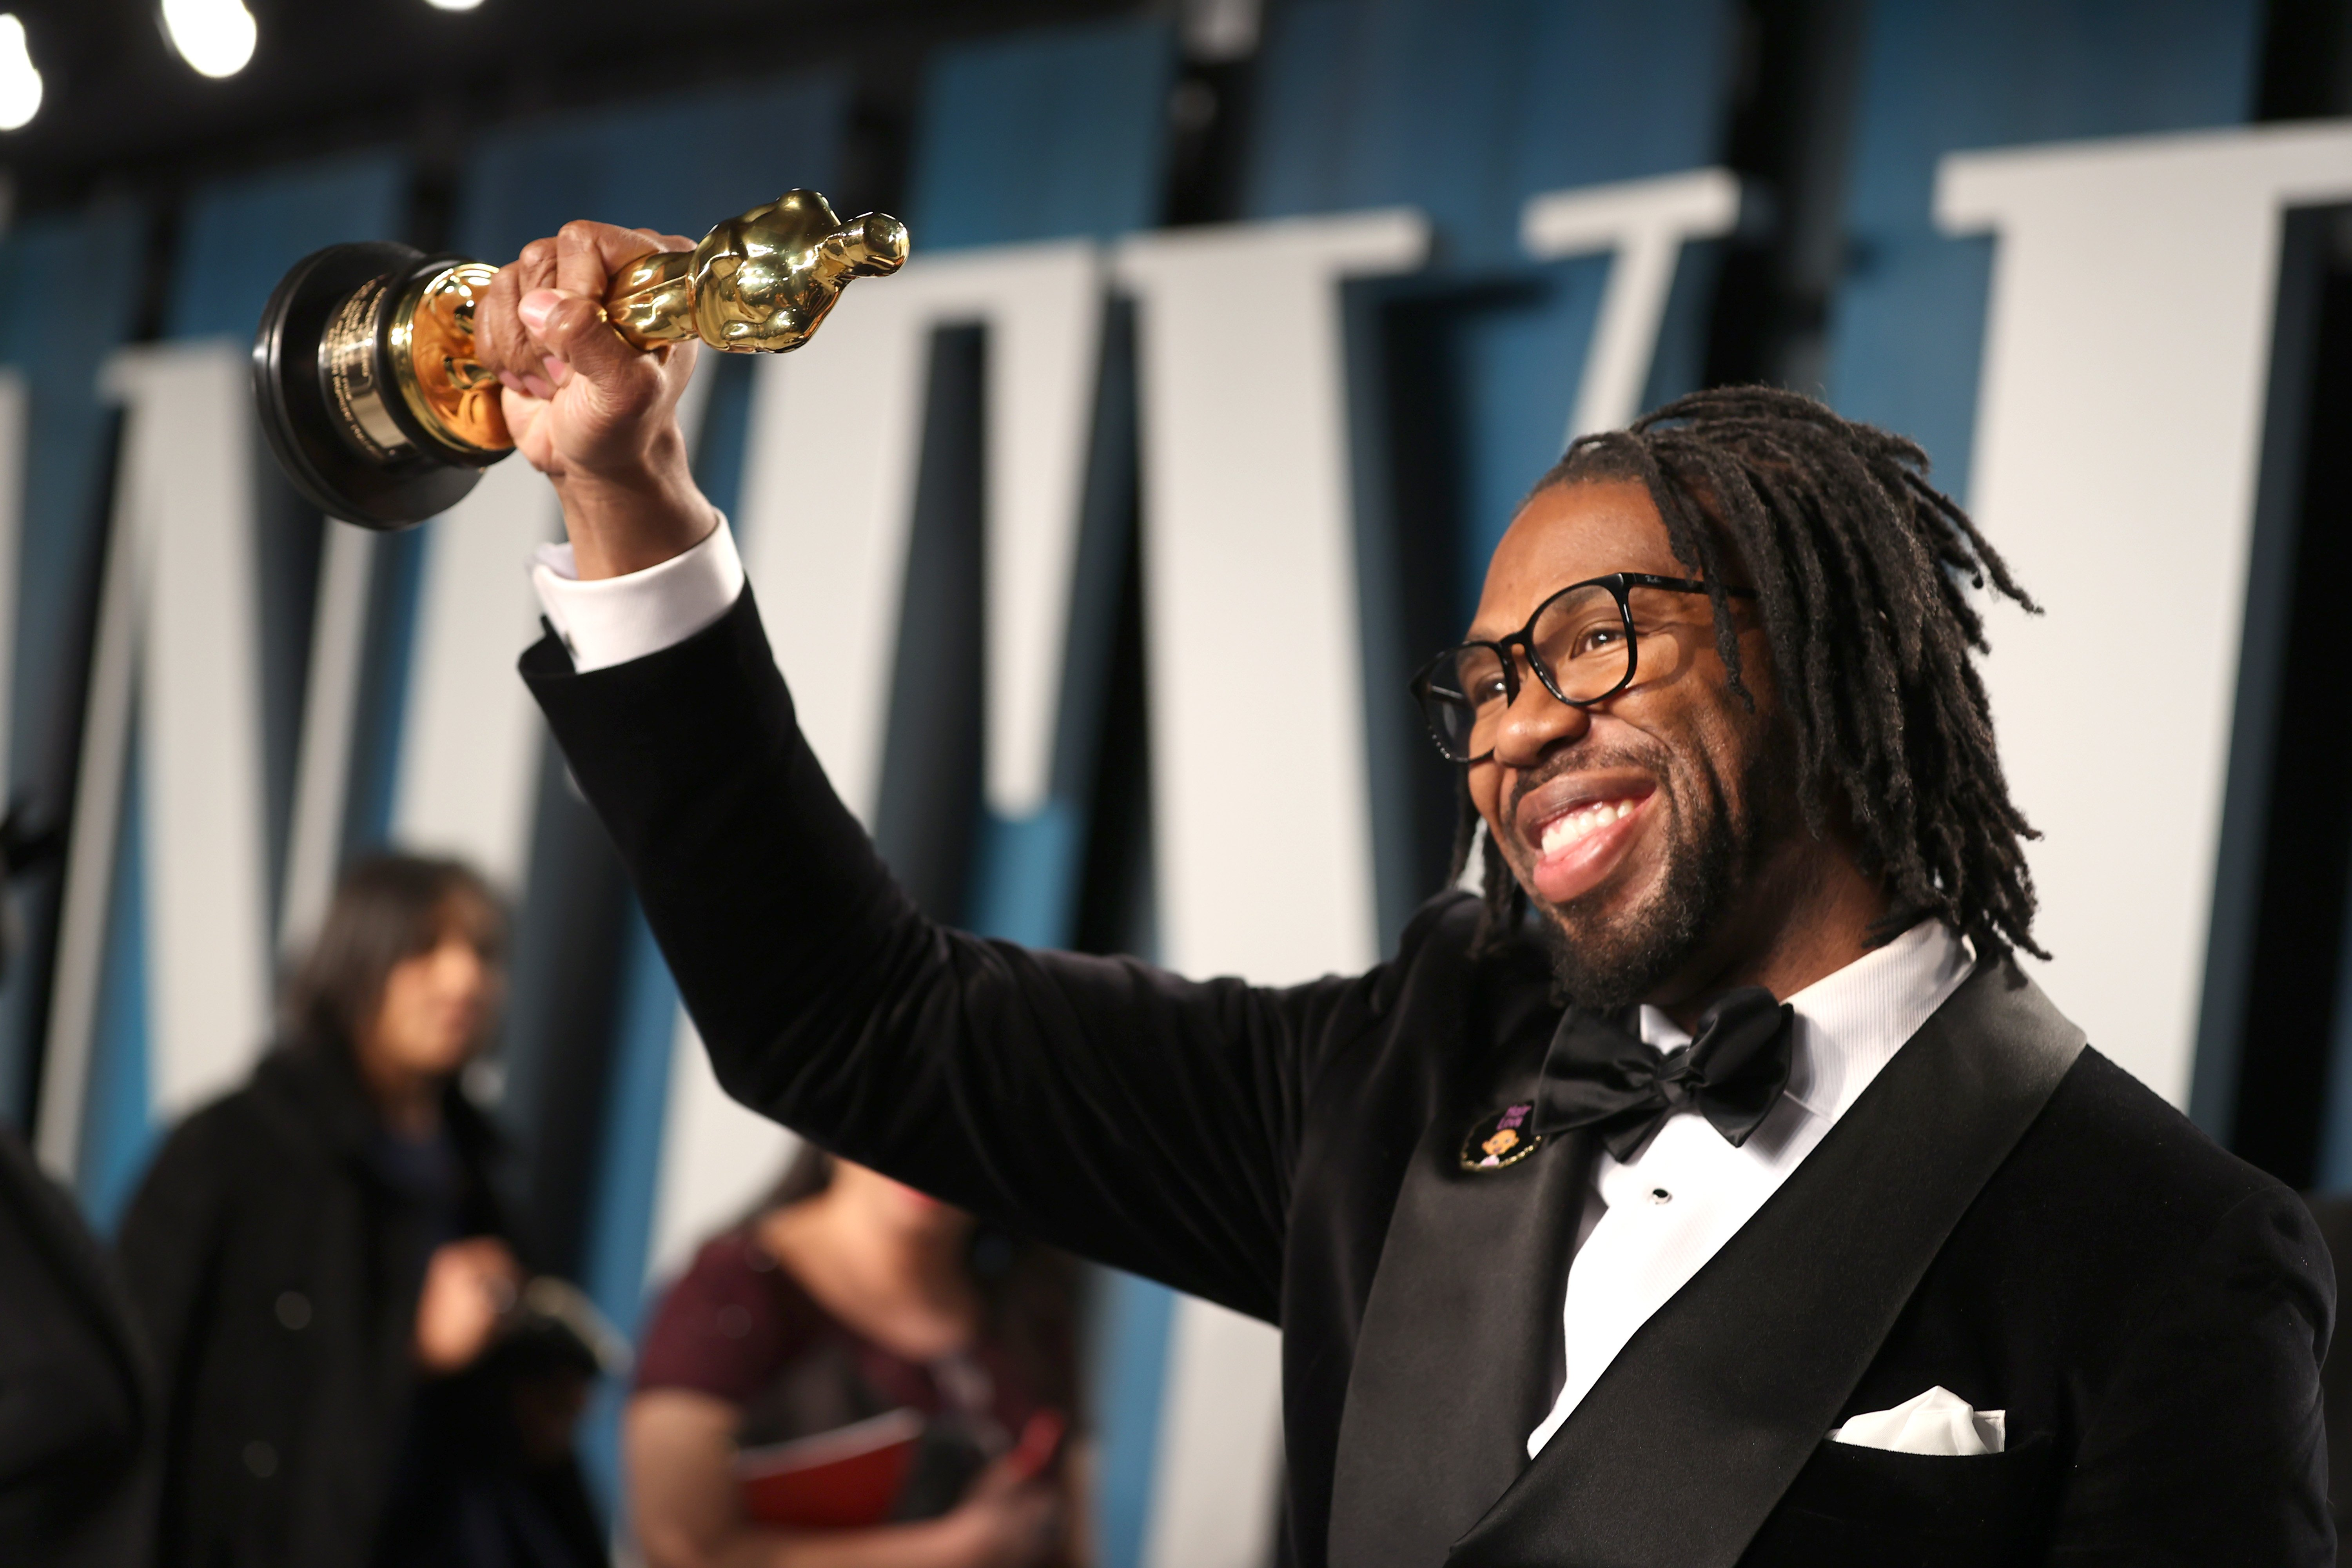 """Matthew A. Cherry posed with the Oscar for Best Animated Short Film for """"Hair Love"""" at the 2020 Vanity Fair Oscar Party. 